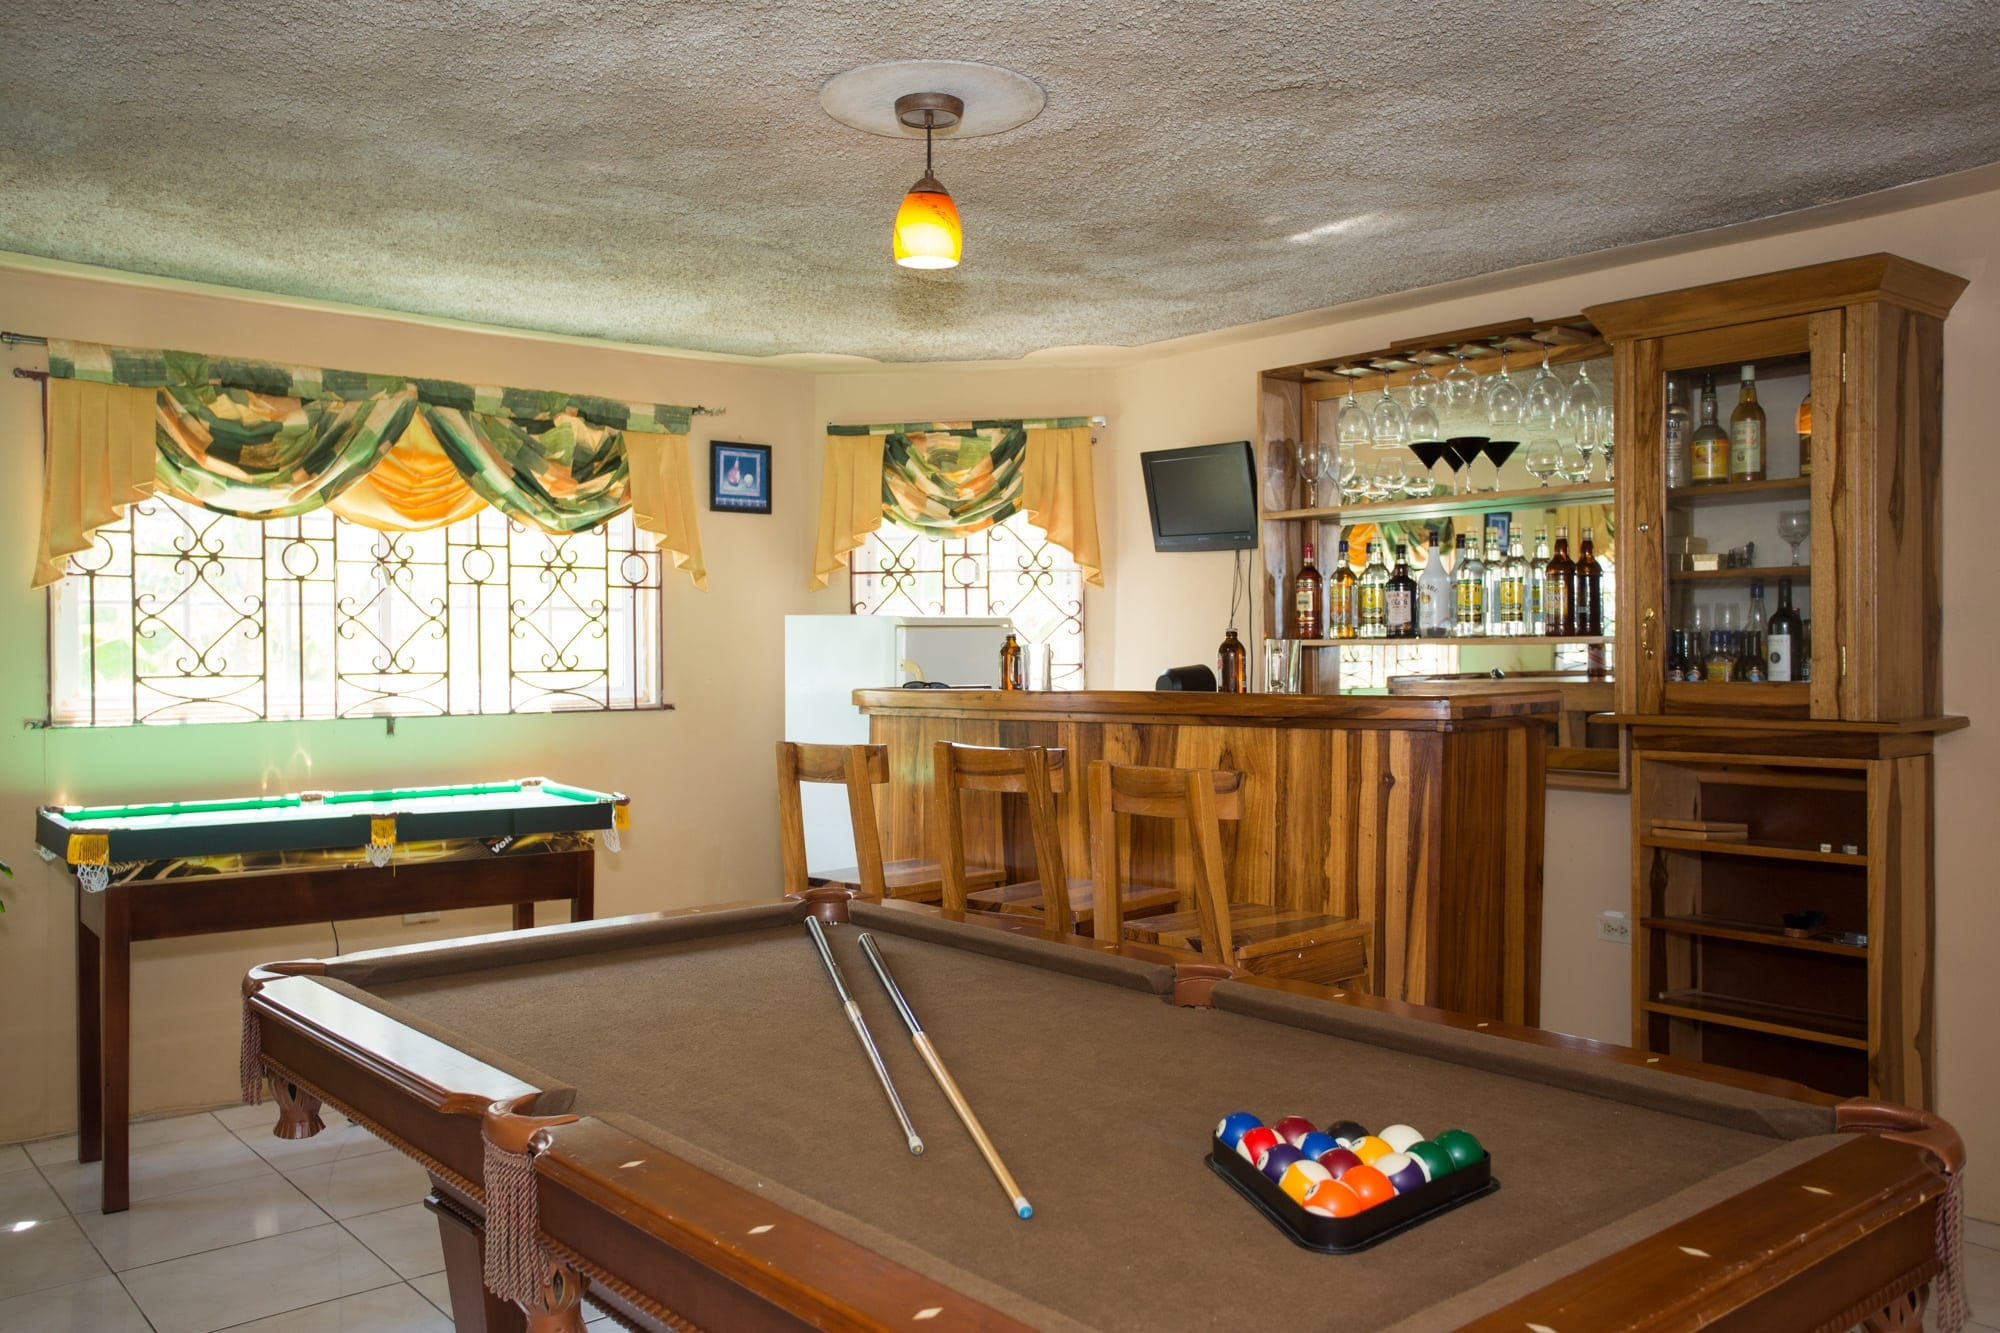 Recreation room and bar 201510